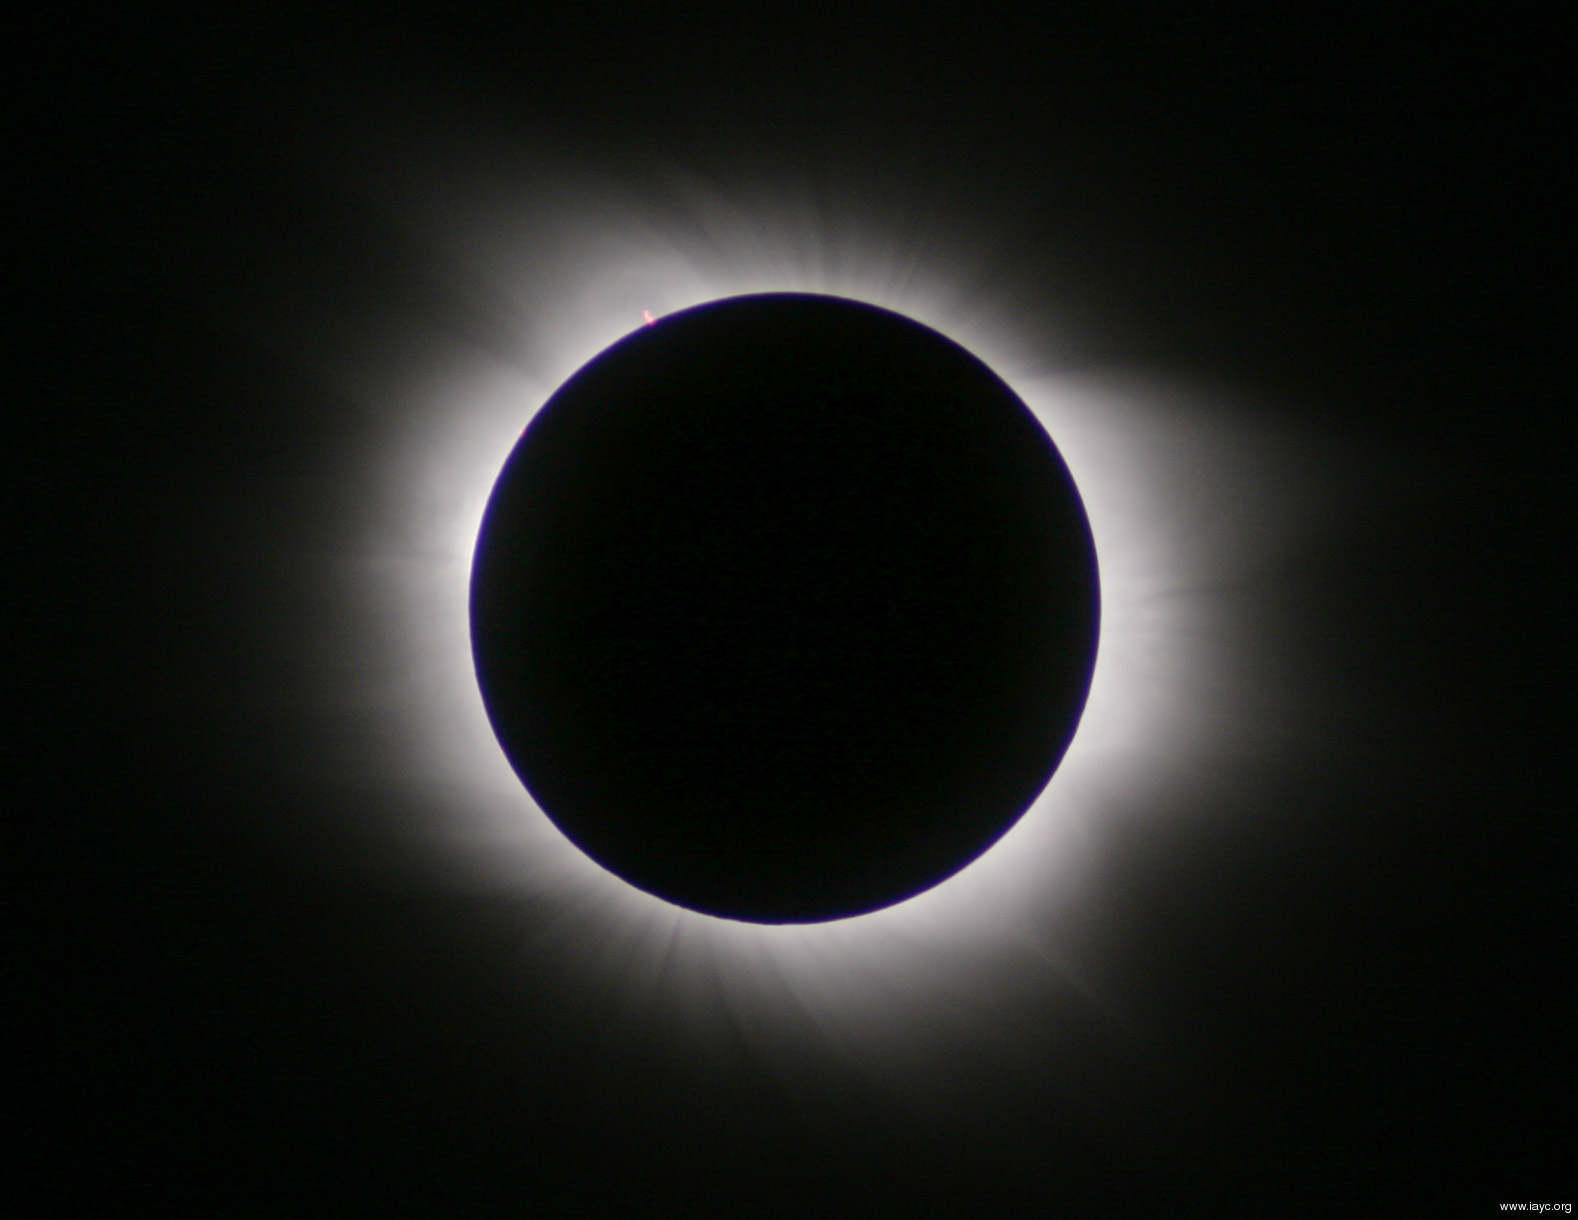 Eclipse - 11 photo